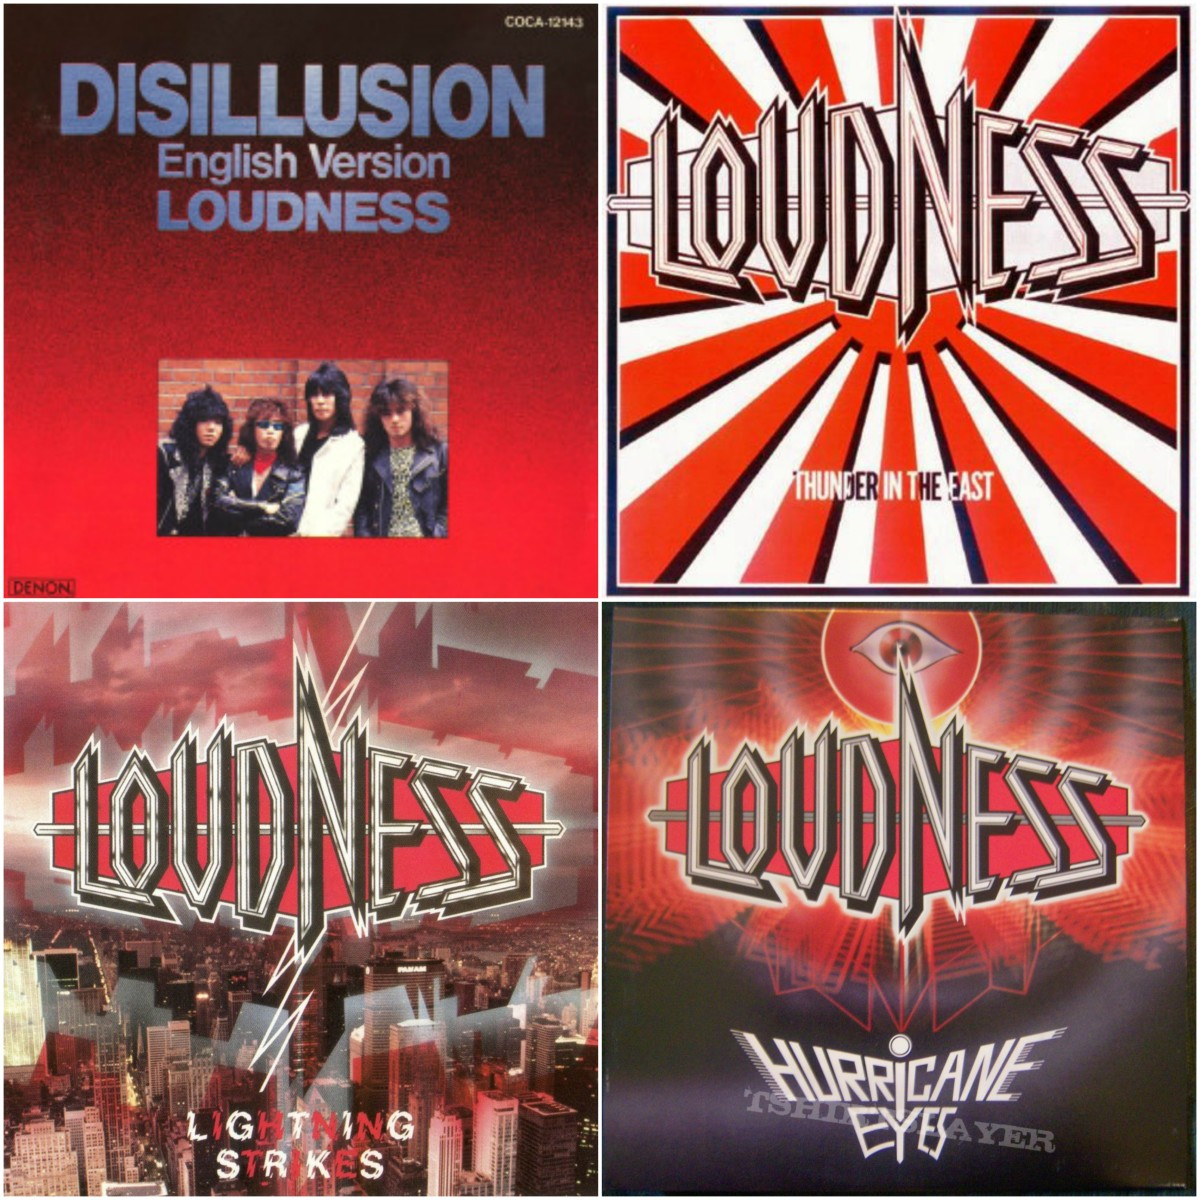 Disillusion (1984), Thunder In The East (1985), Lightning Strikes (1986), Hurricane Eyes (1987)